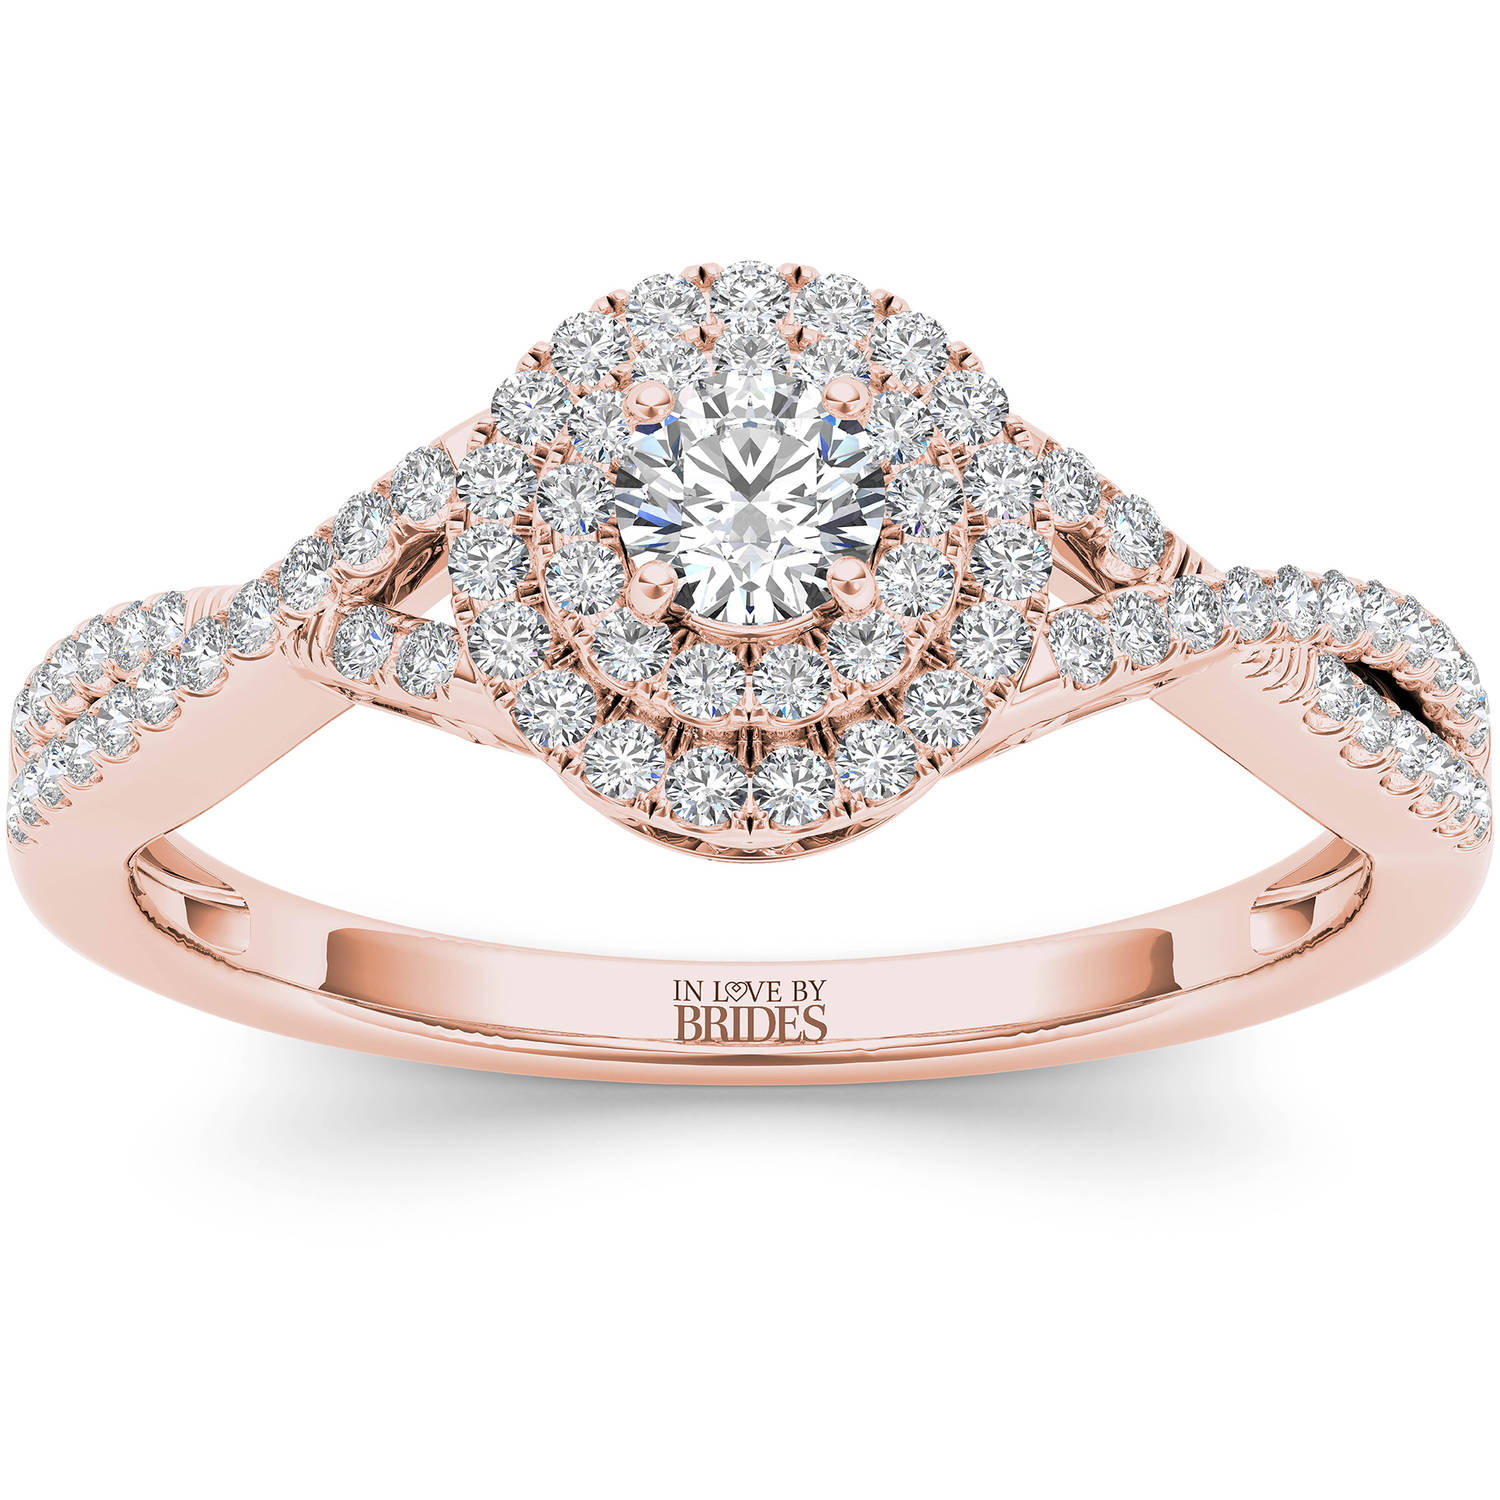 IN LOVE BY BRIDES 3/8 Carat T.W. Certified Diamond Twisted Shank Double Halo 14kt Pink Gold Engagement Ring